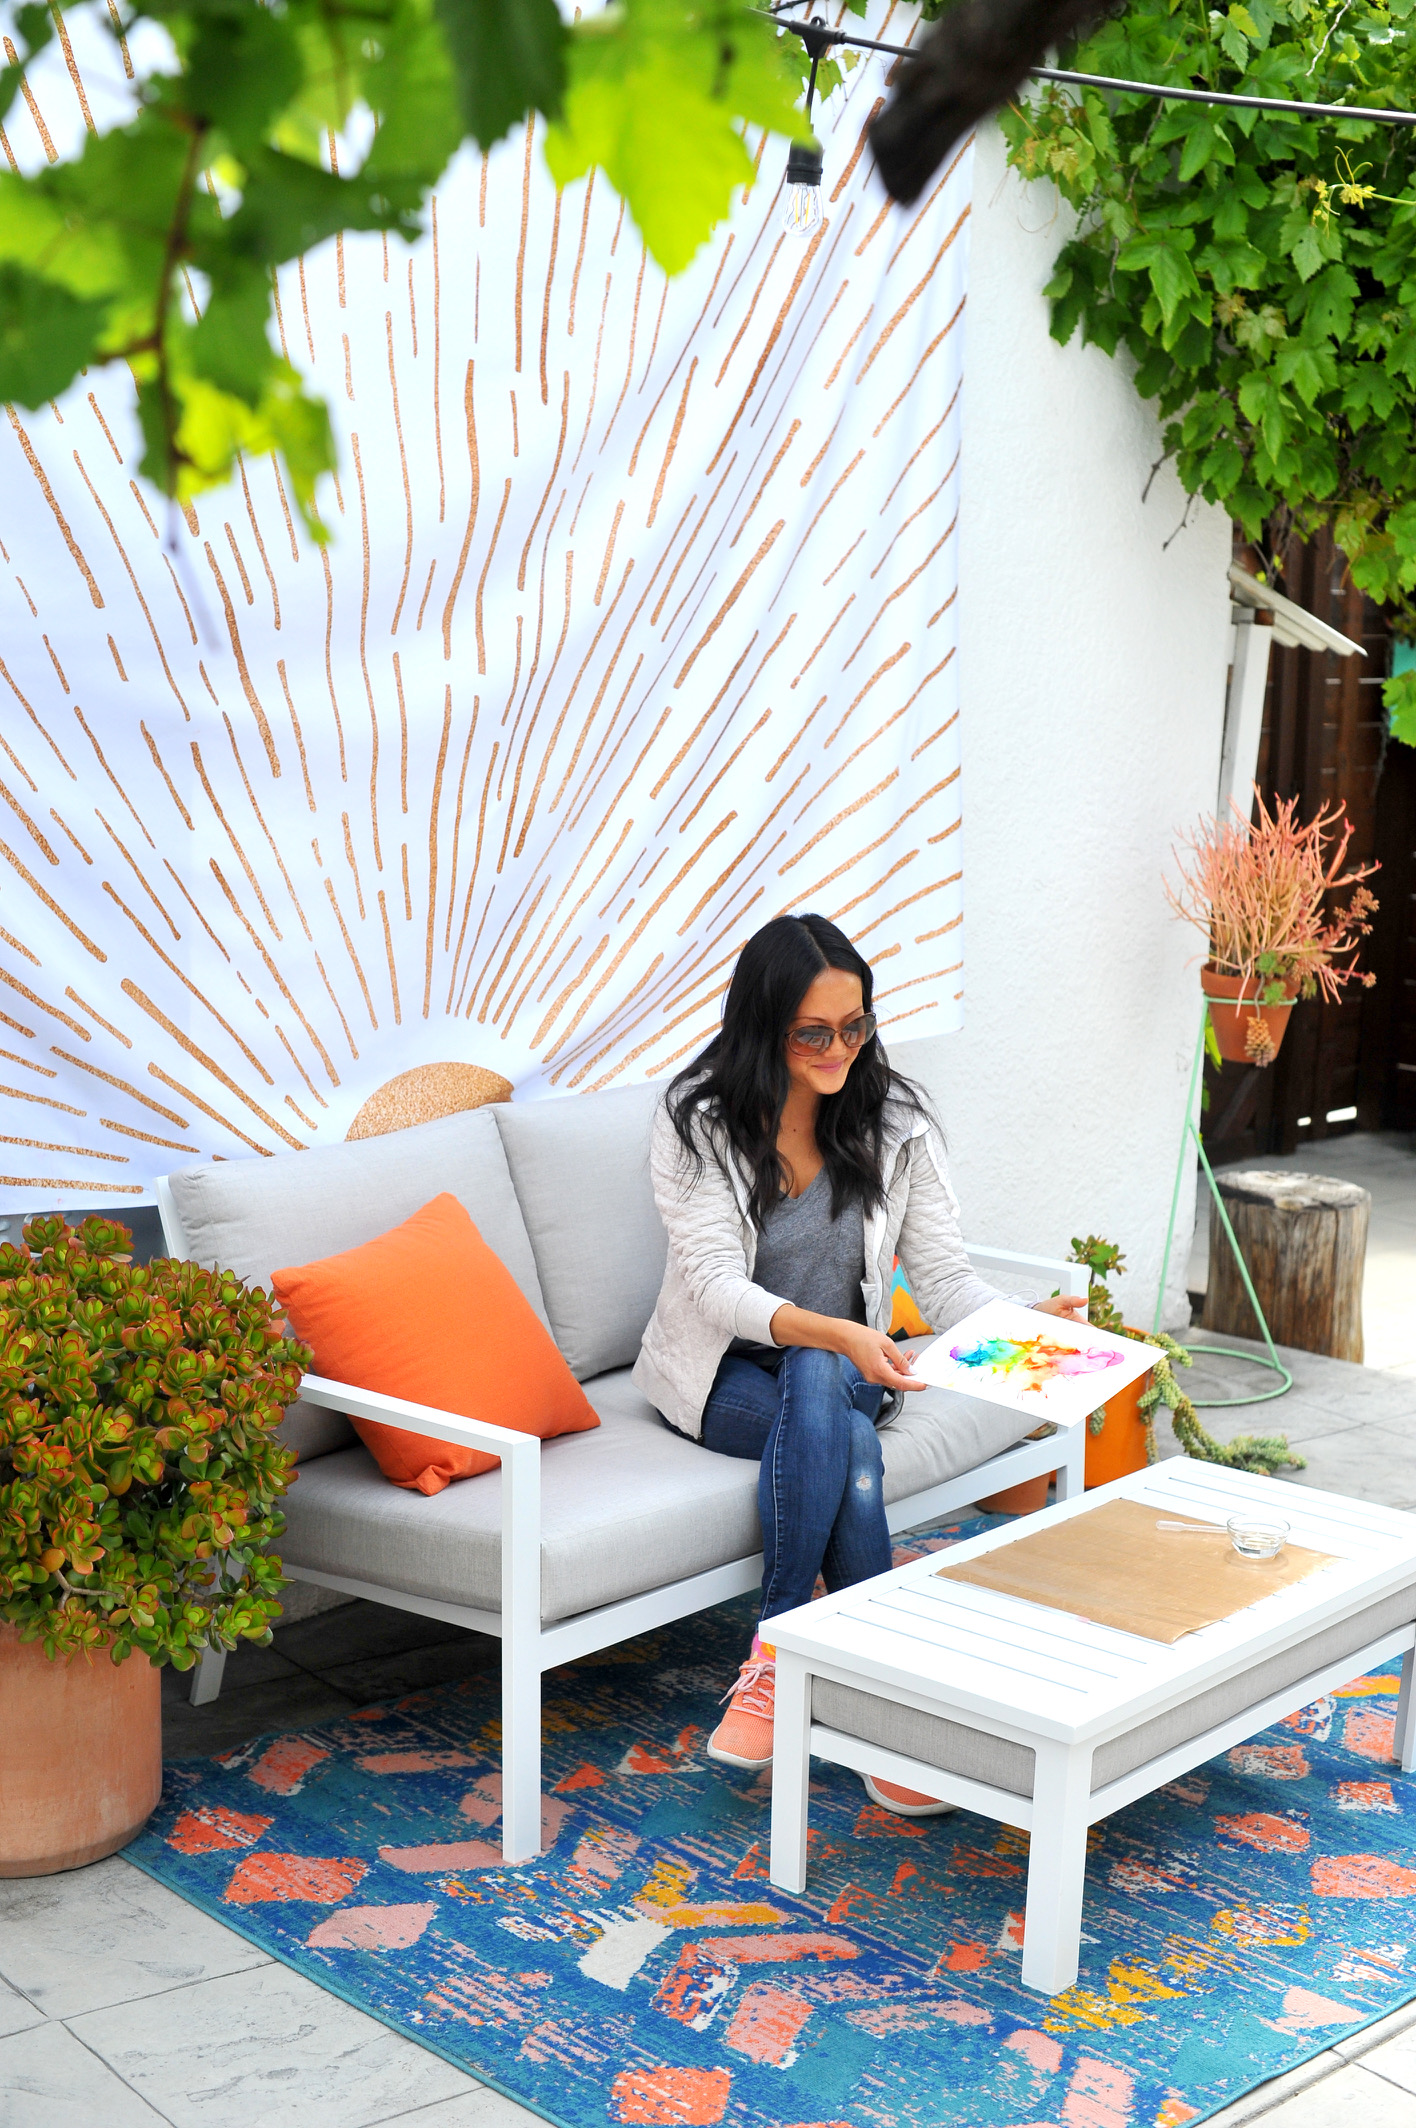 5 Tips for Giving Your Backyard the Perfect Summer Makeover